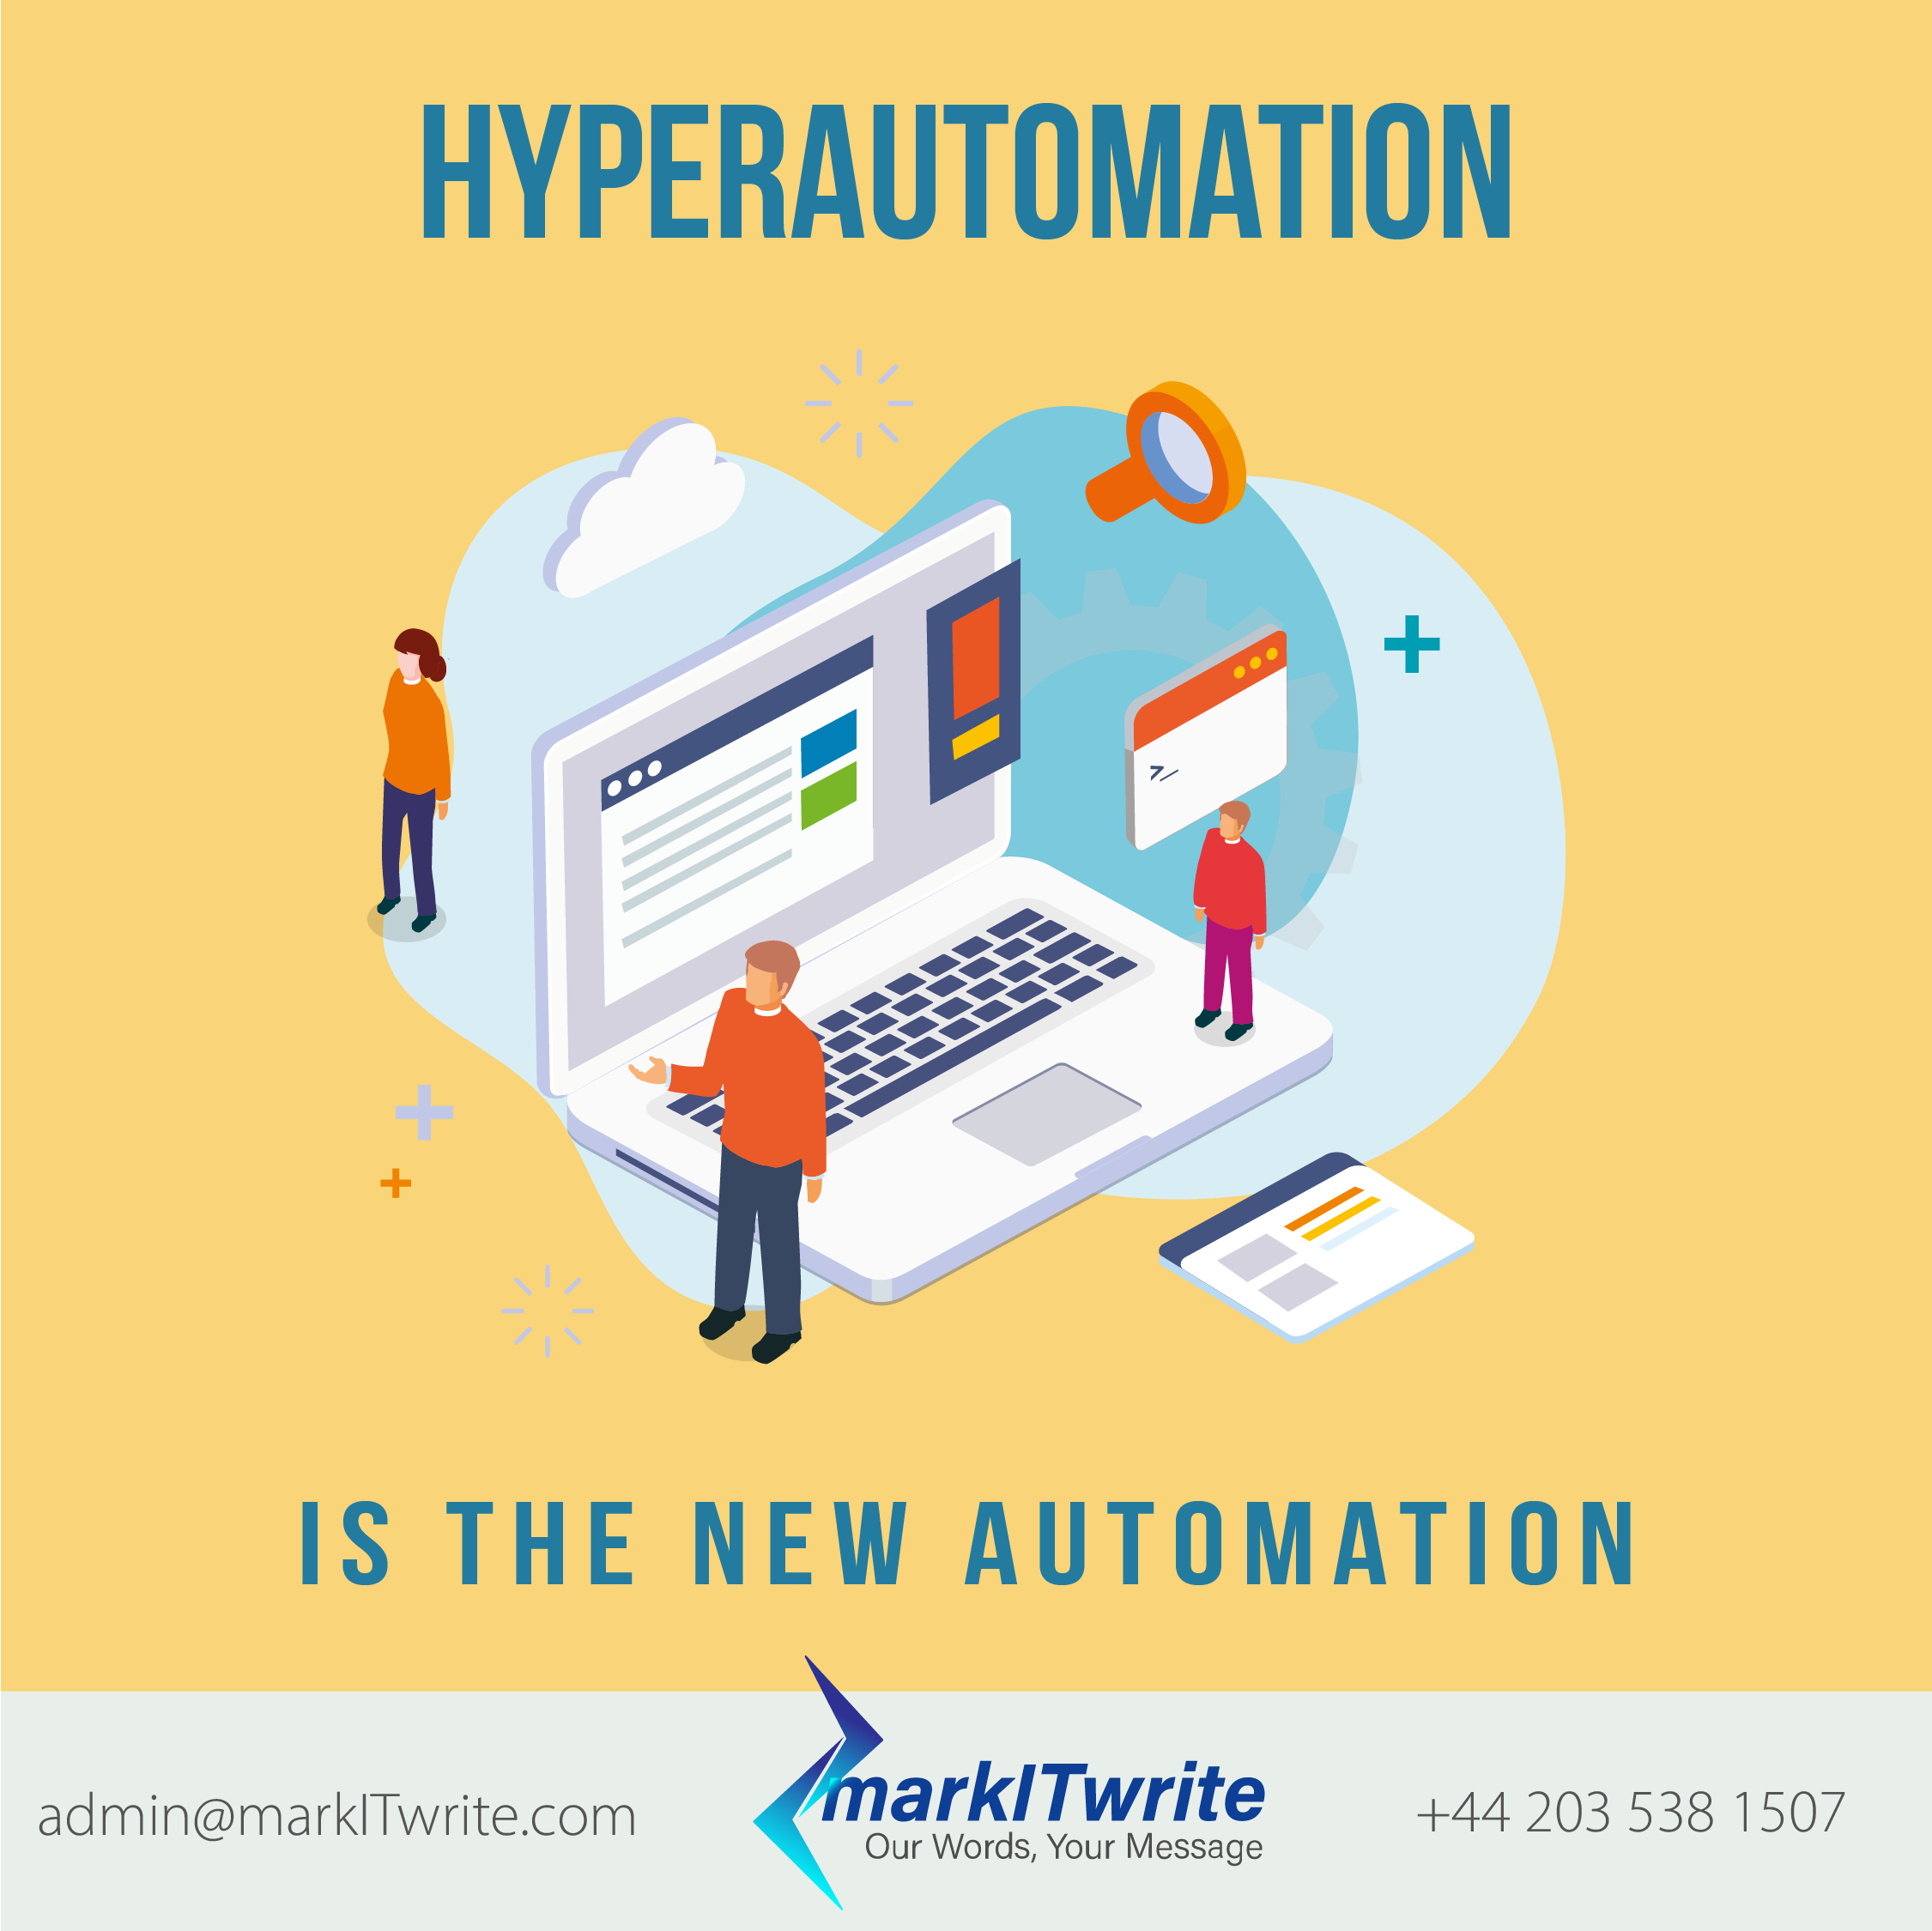 Hyperautomation is the new automation